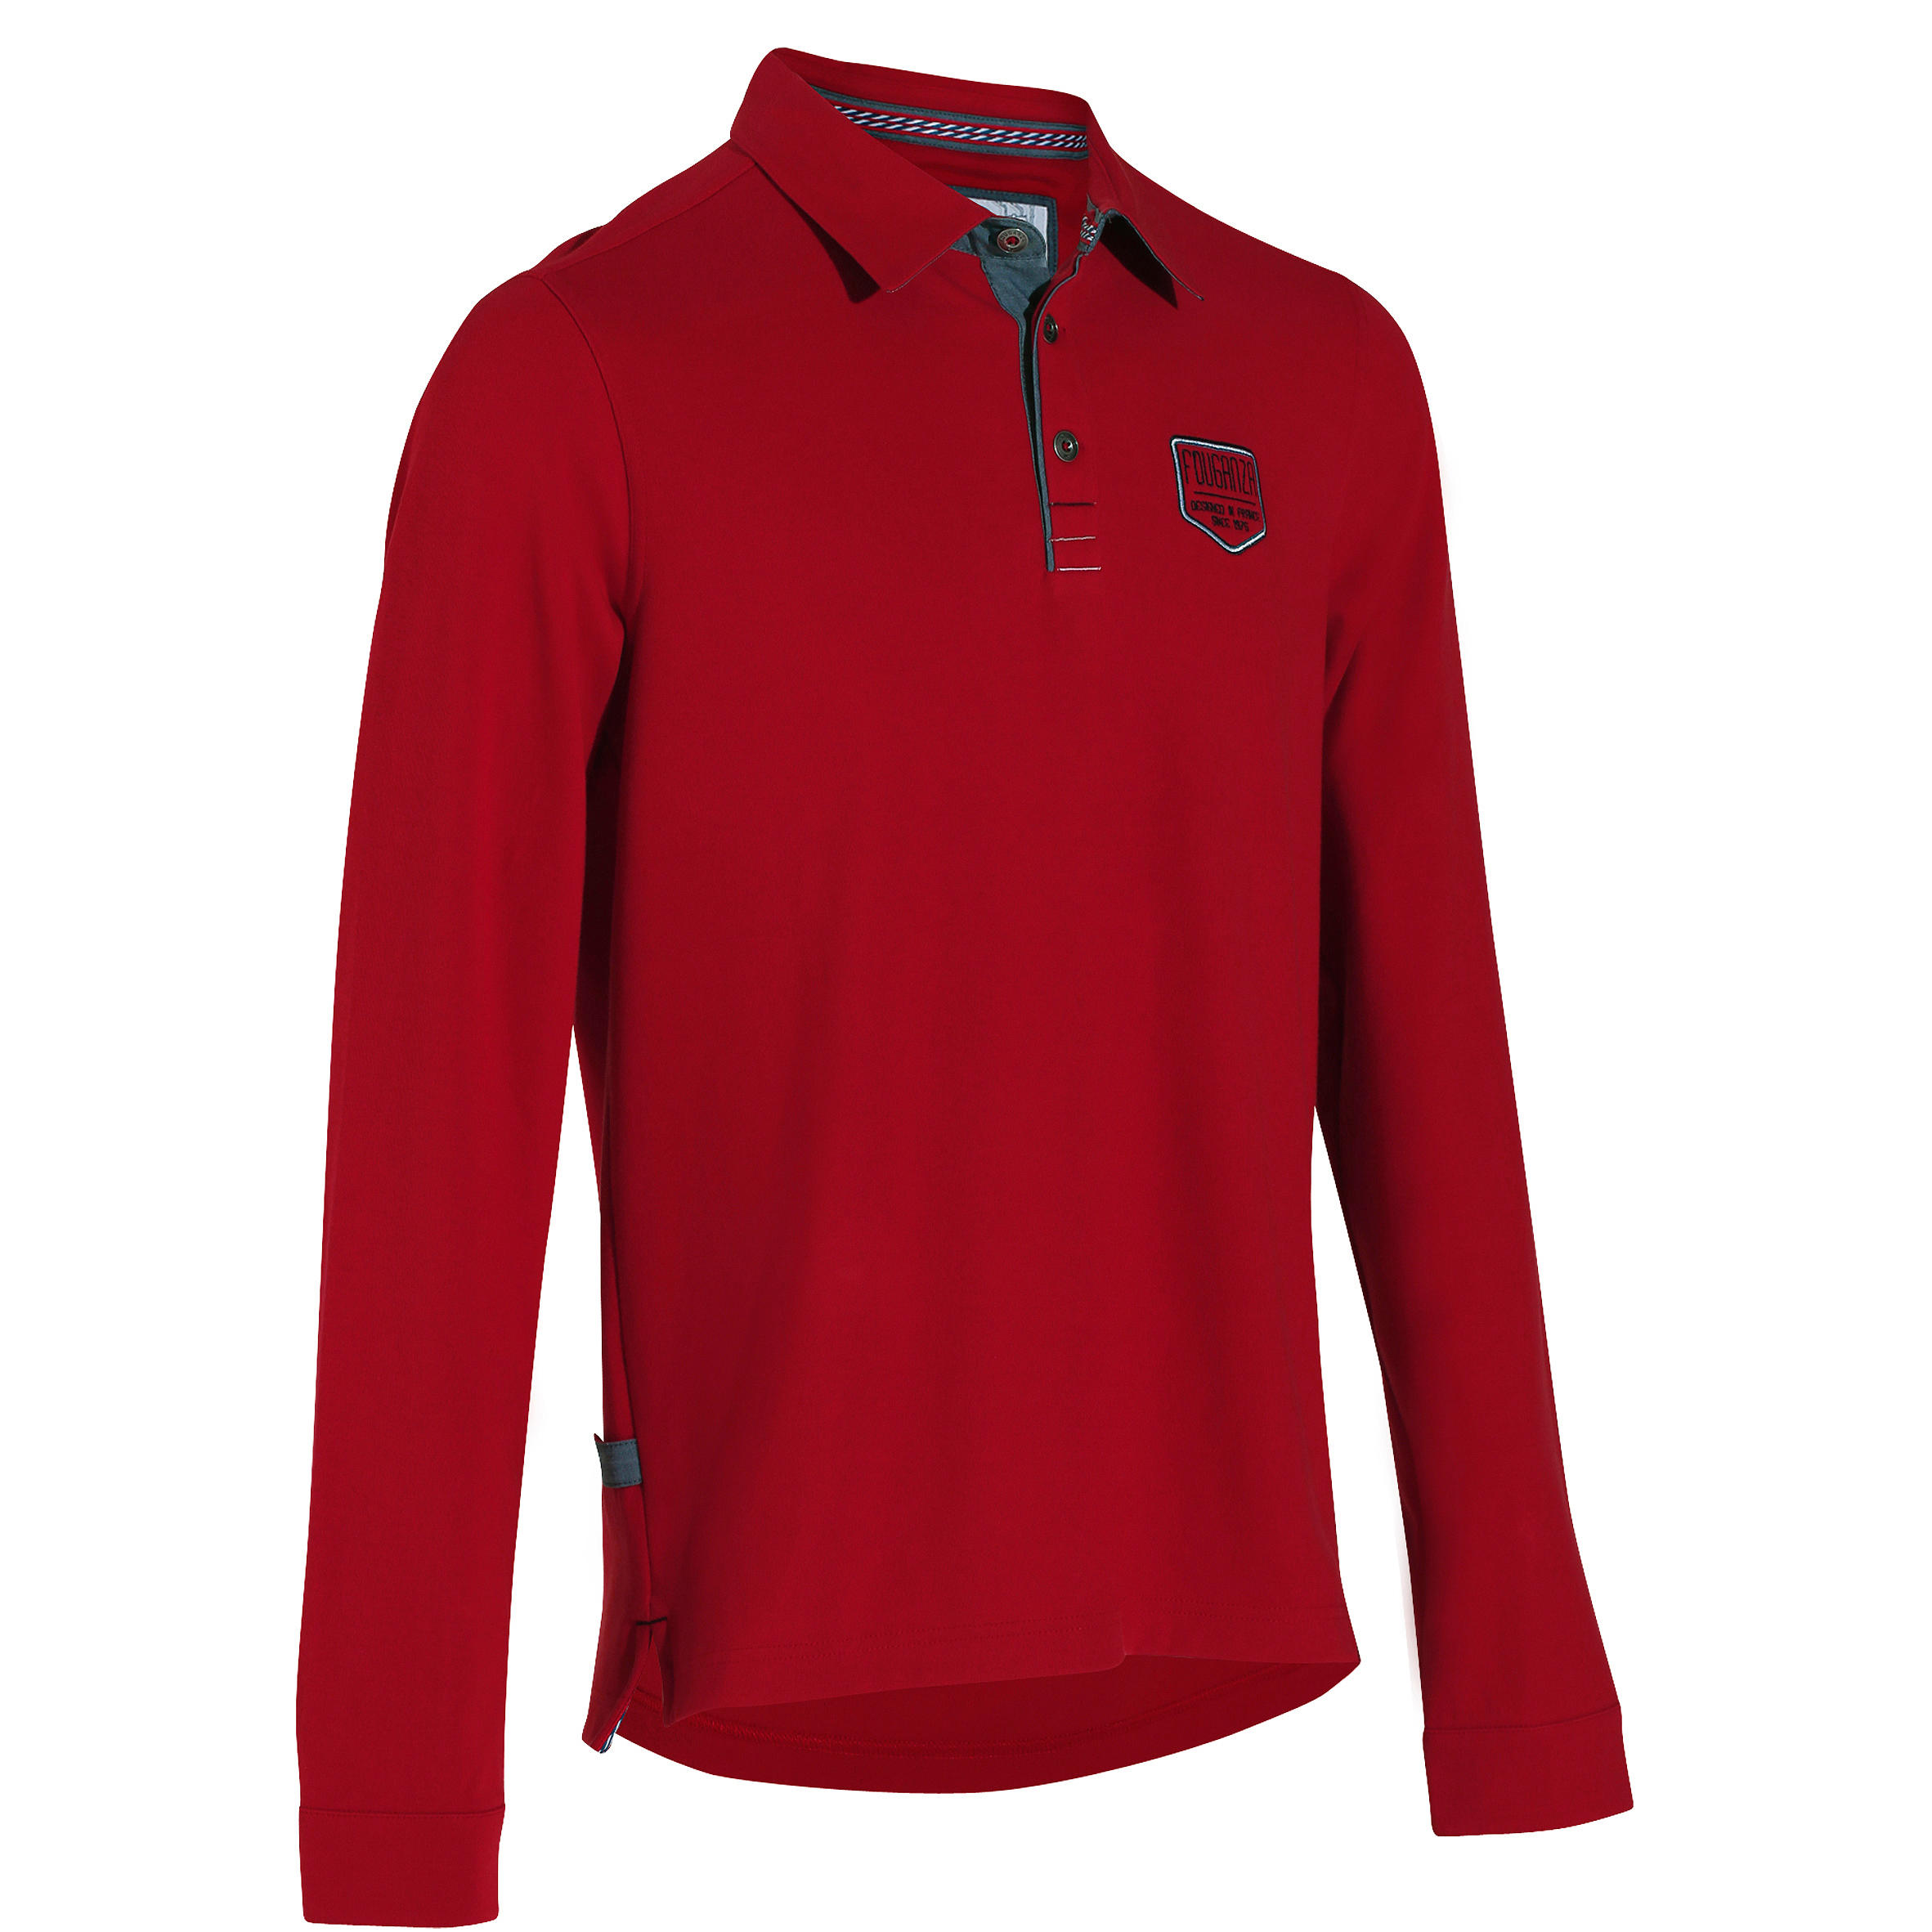 Blason Long-Sleeved Horseback Riding Polo - Red